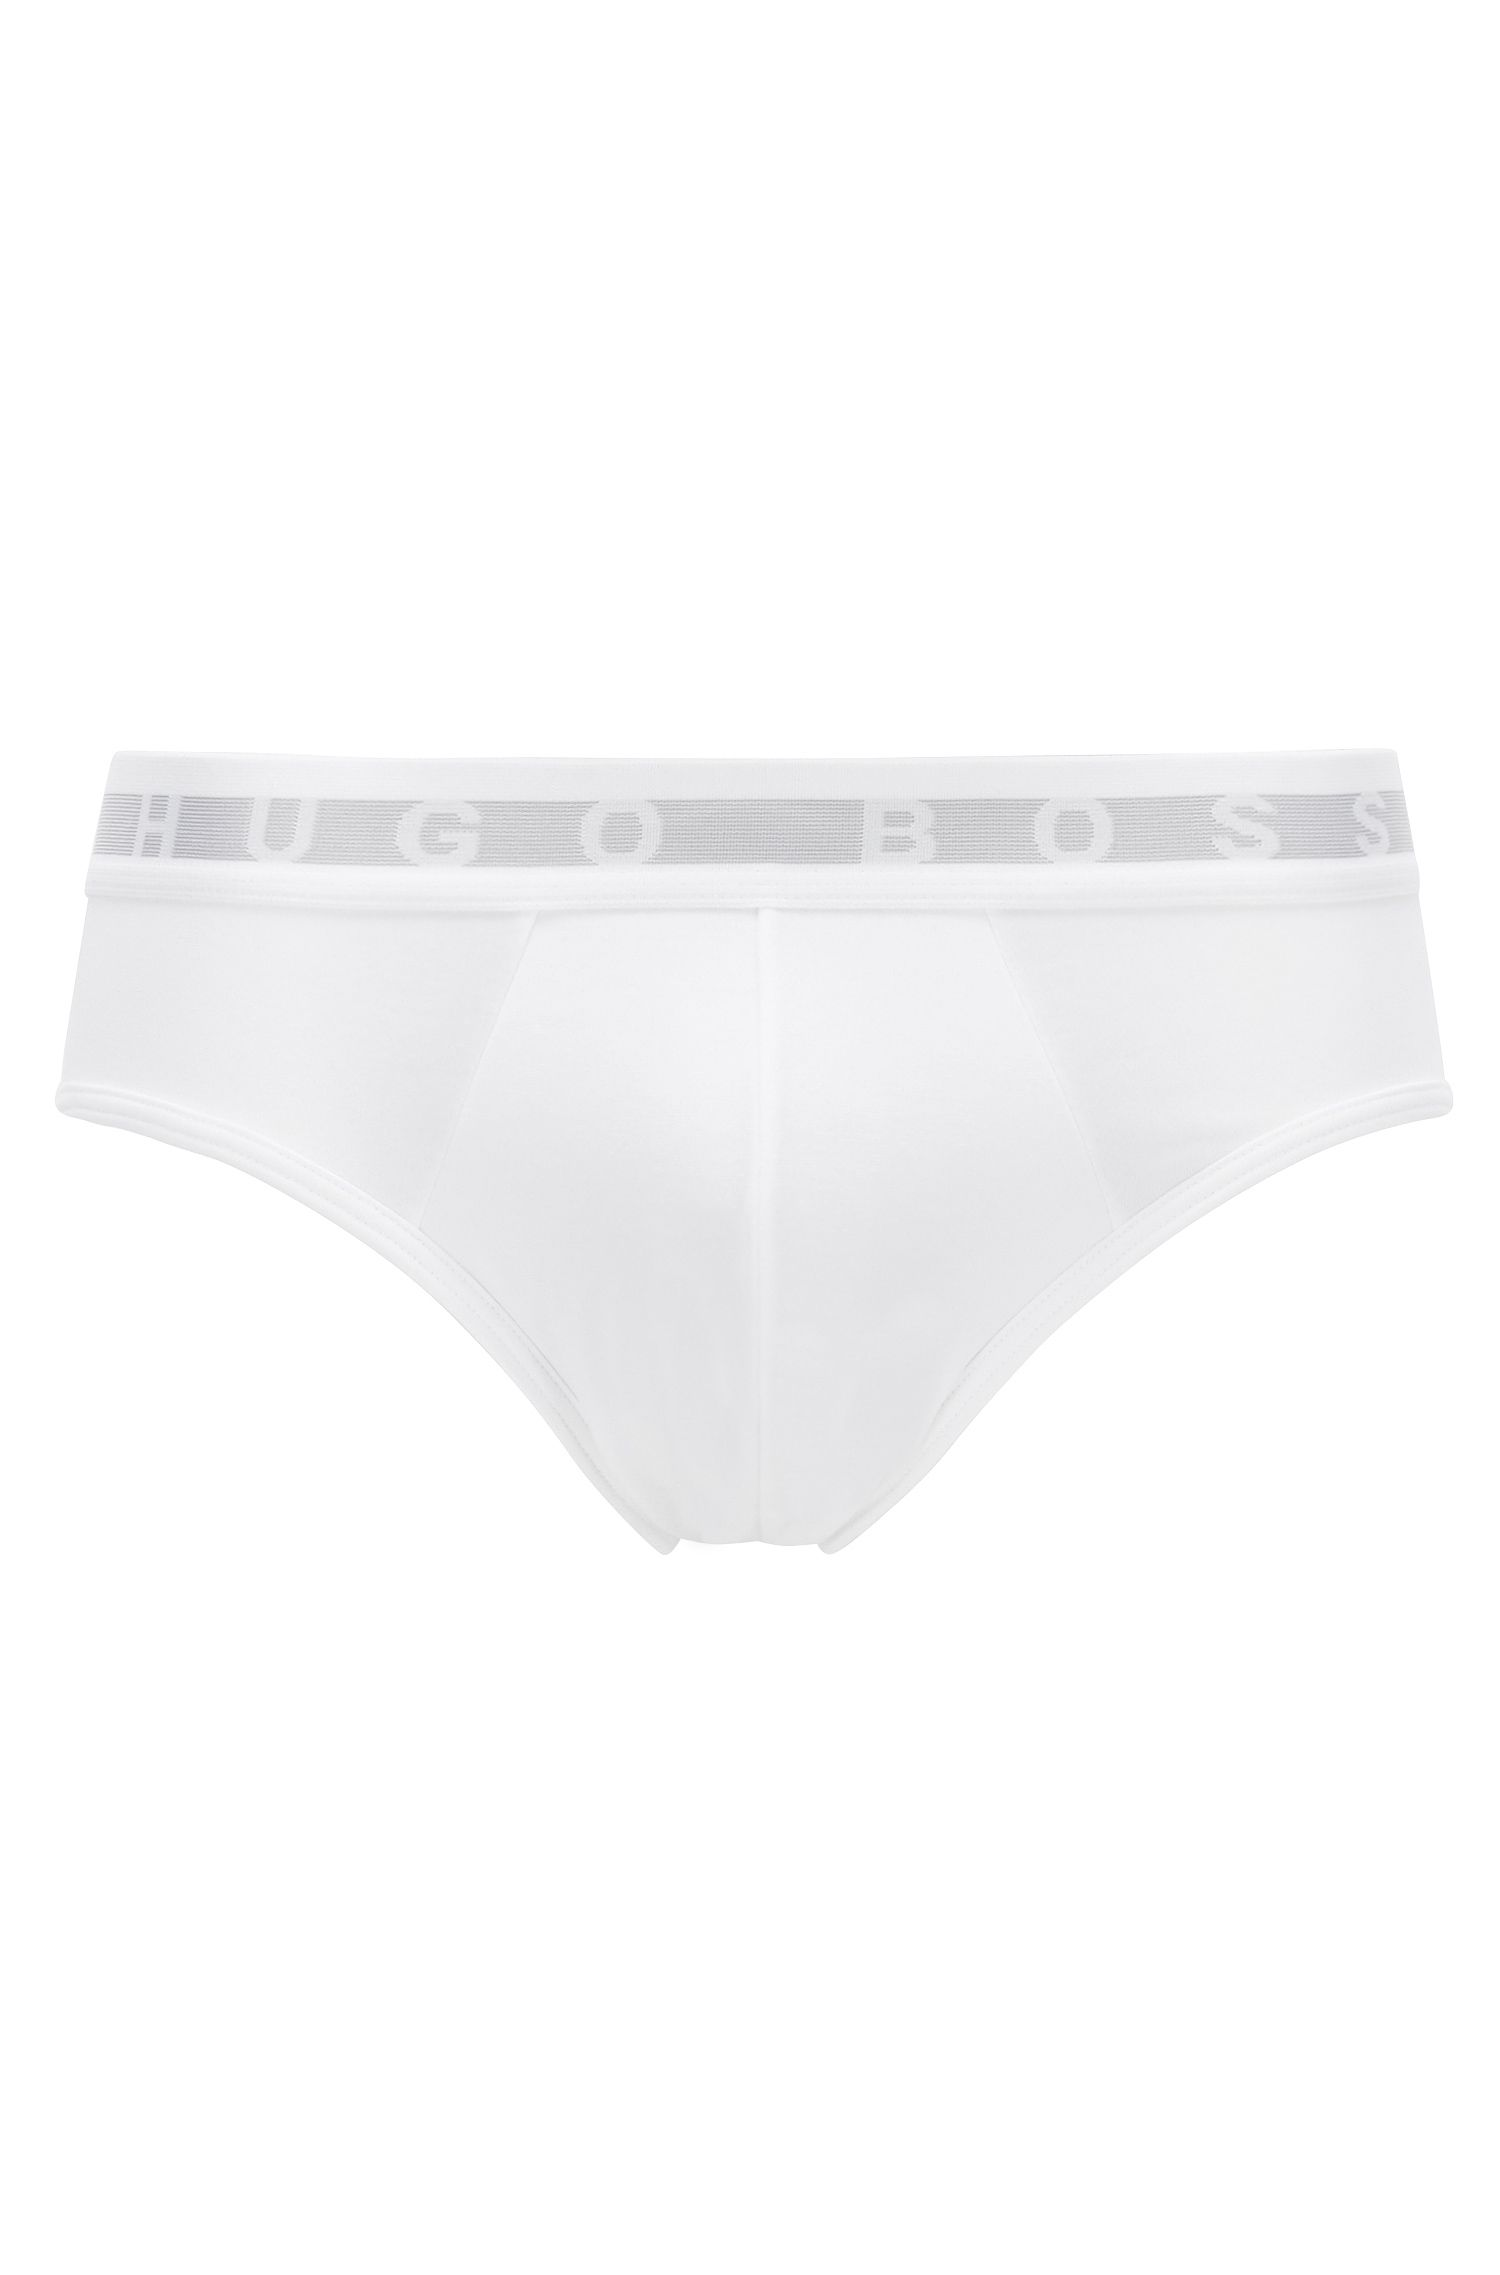 Briefs in a COOLMAX® cotton blend, White